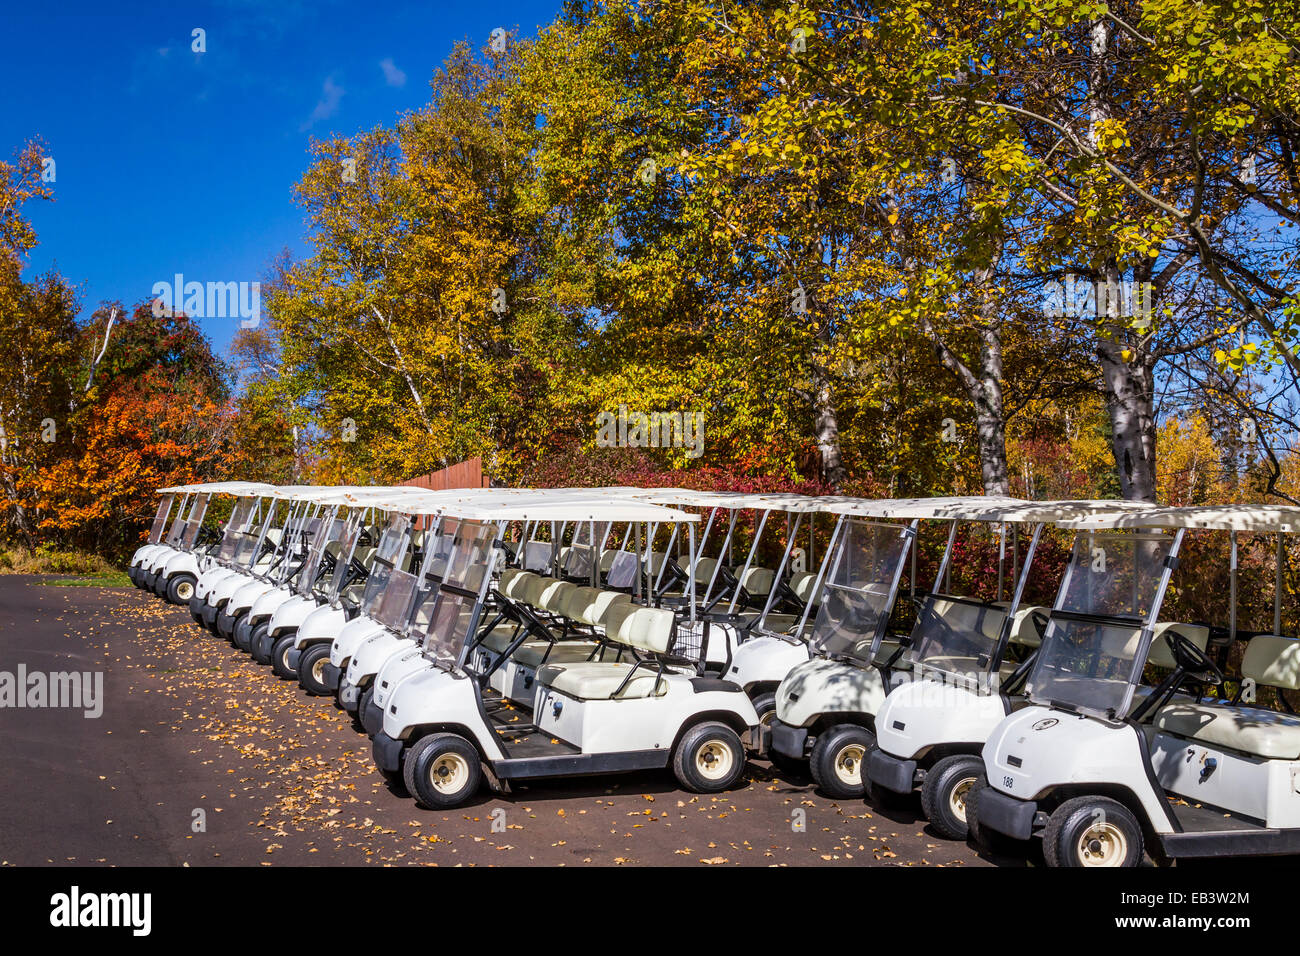 Rows of golf carts with fall foliage color at the Lutsen Mountains Resort on the north shore of Lake Superior near - Stock Image